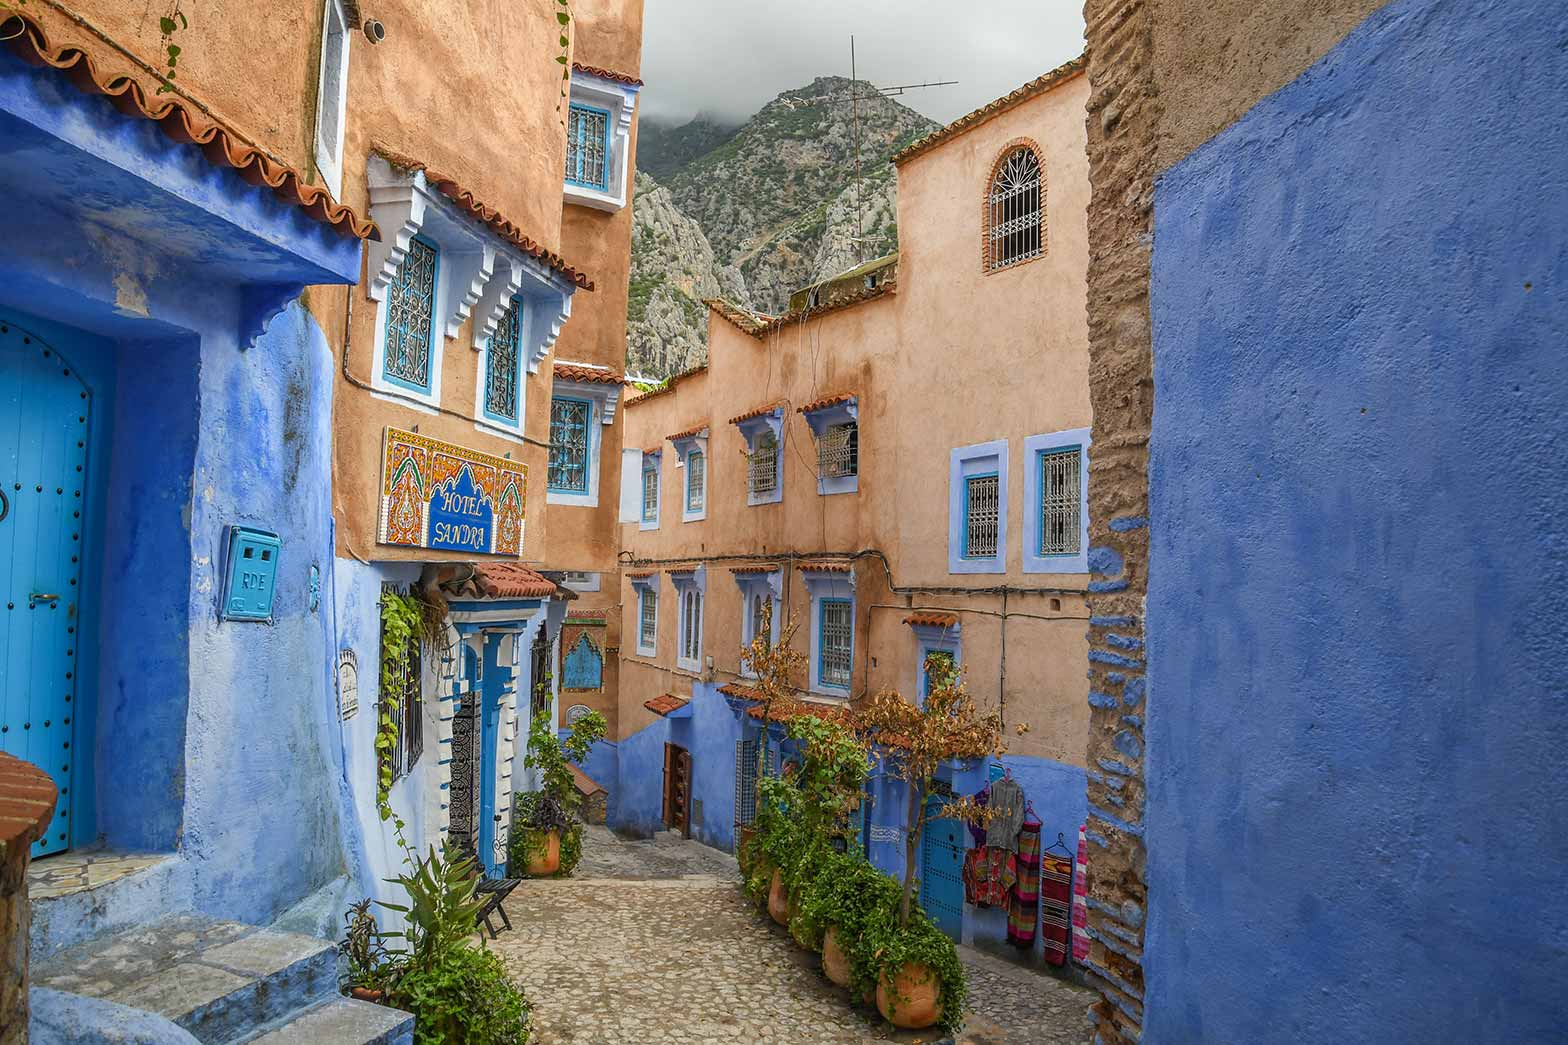 Backstreets of Chefchaouen